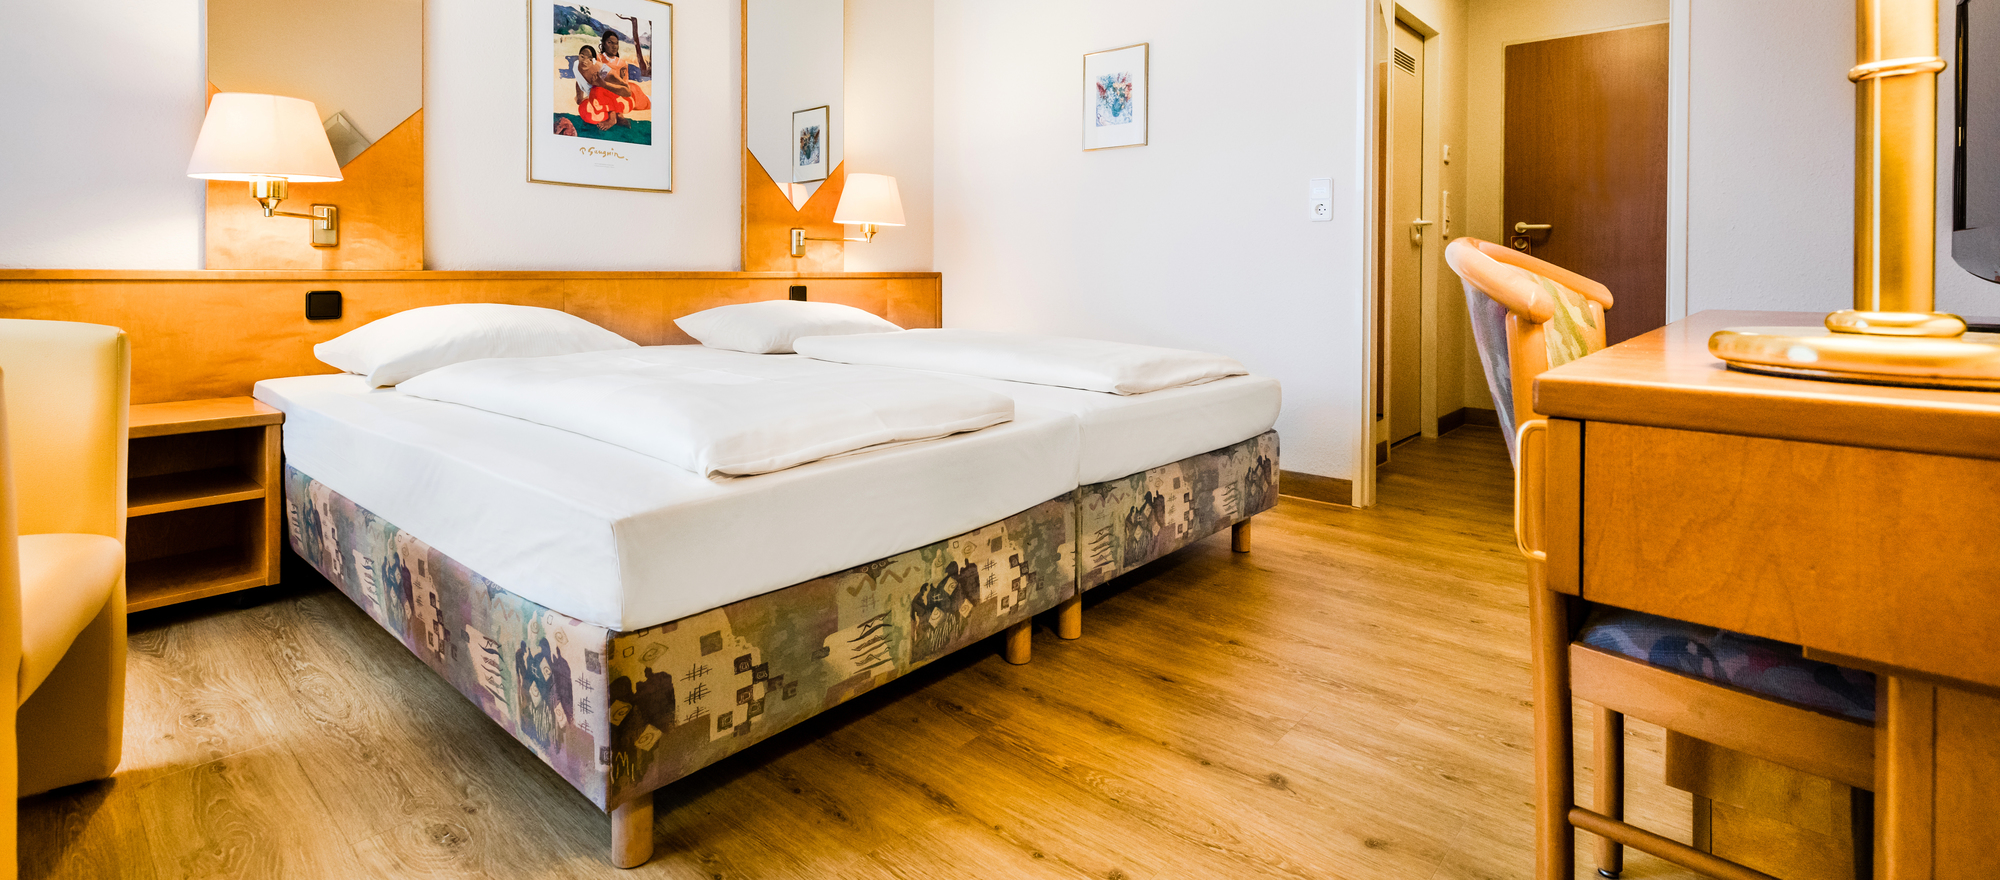 Well equiped rooms in the 4-star Ringhotel Residenz Alt Dresden in Dresden